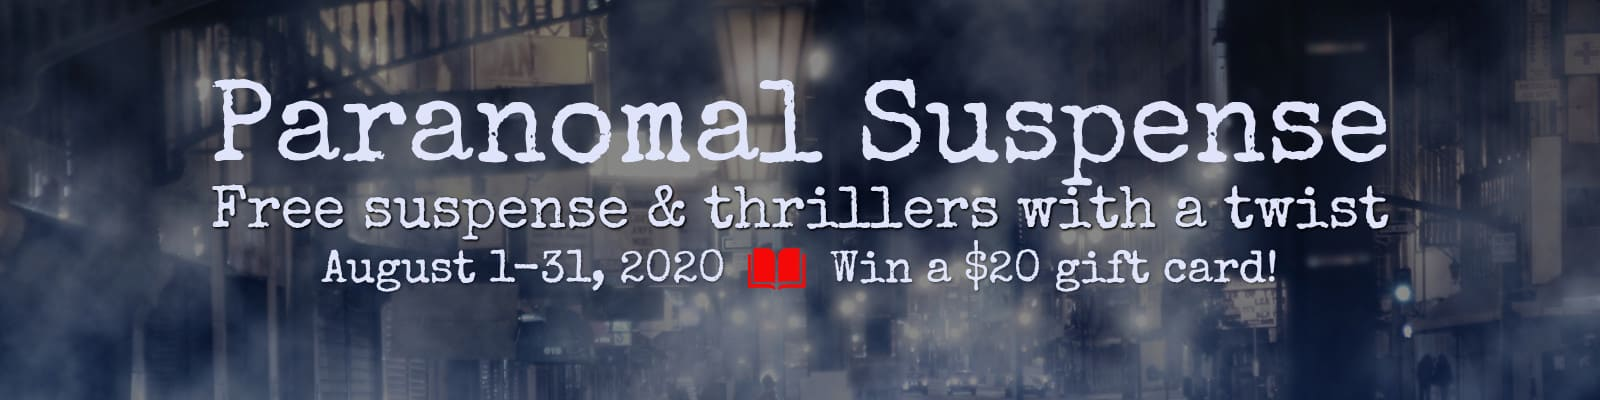 Paranormal Suspense and Thrillers